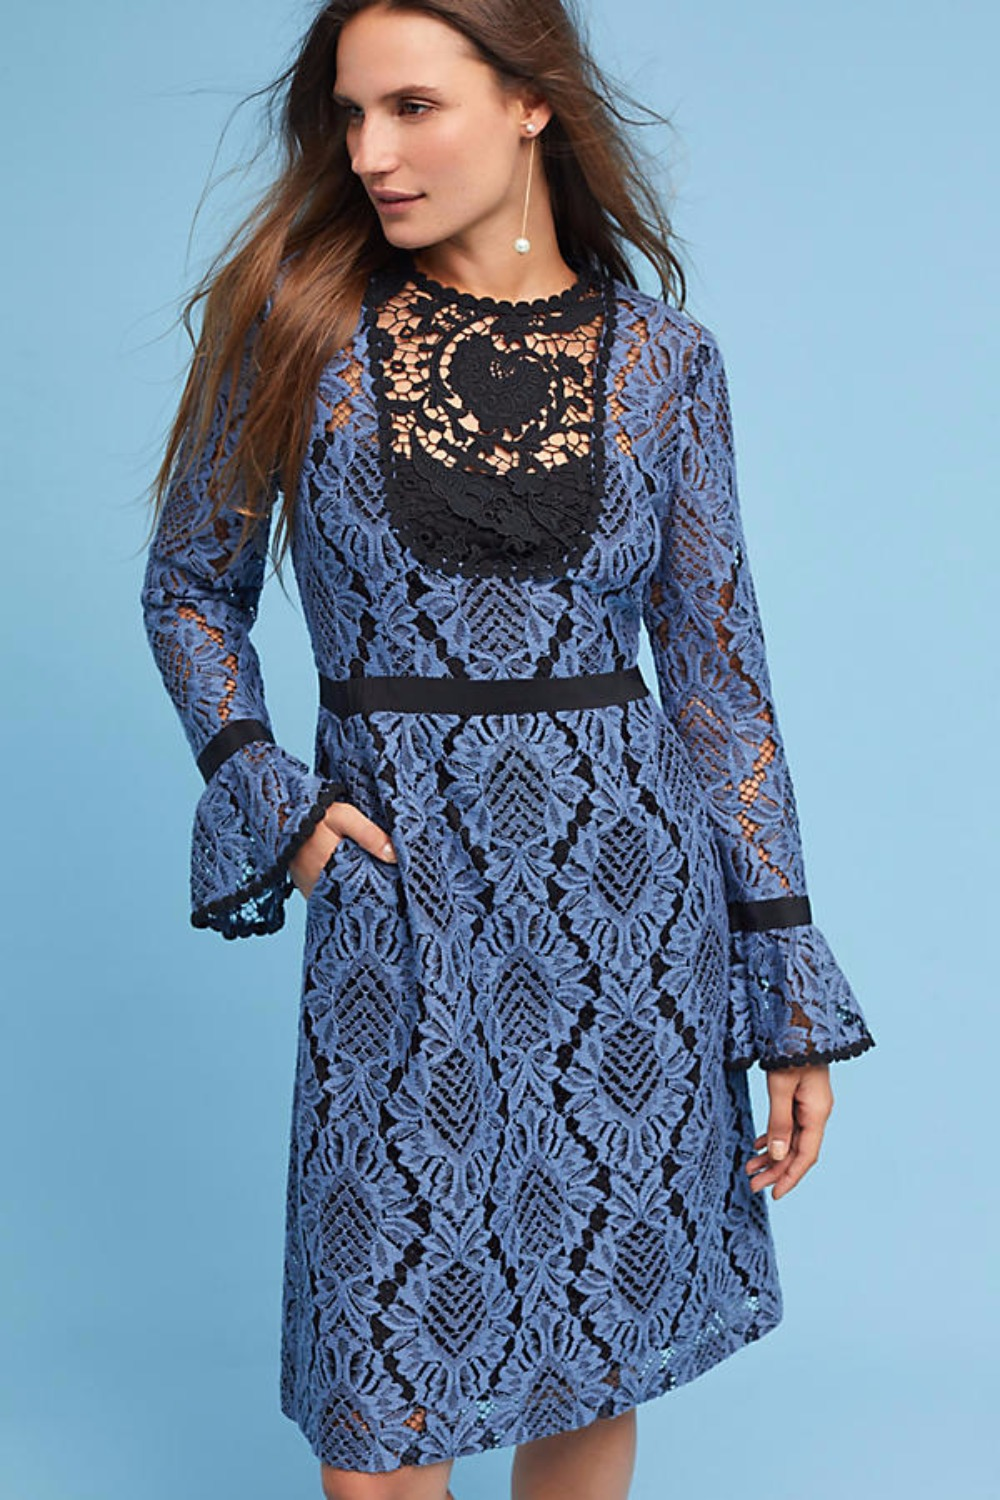 Trending - 20 Stylish Dresses to Wear to a Fall Wedding